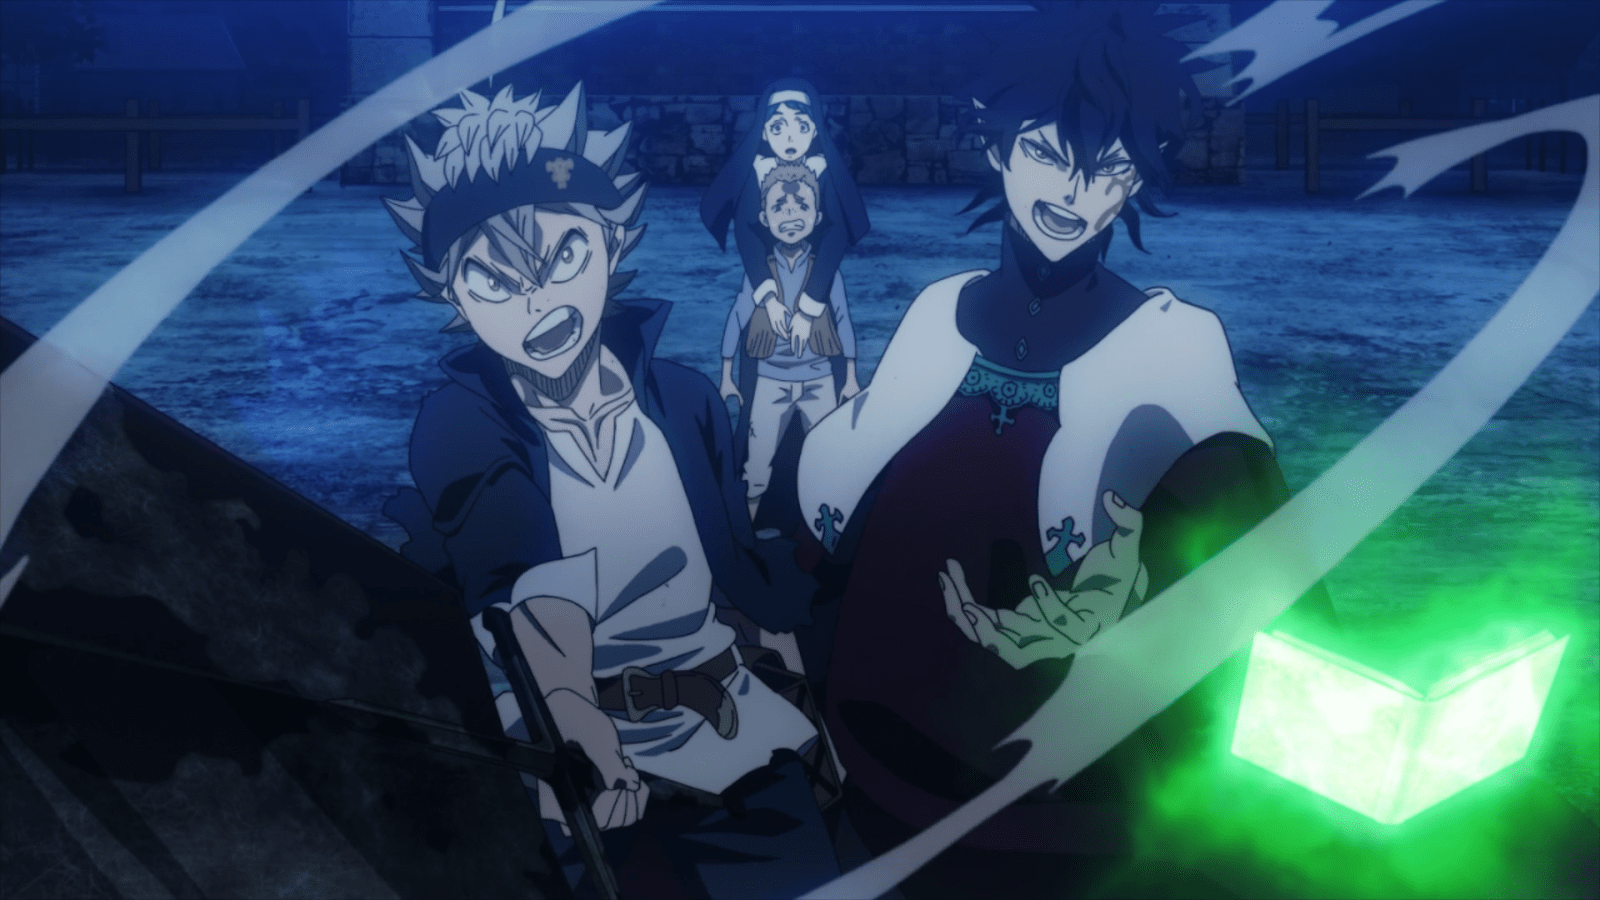 The Black Clover anime may be coming to an end, but there are still plenty of high-octane shows to keep you going